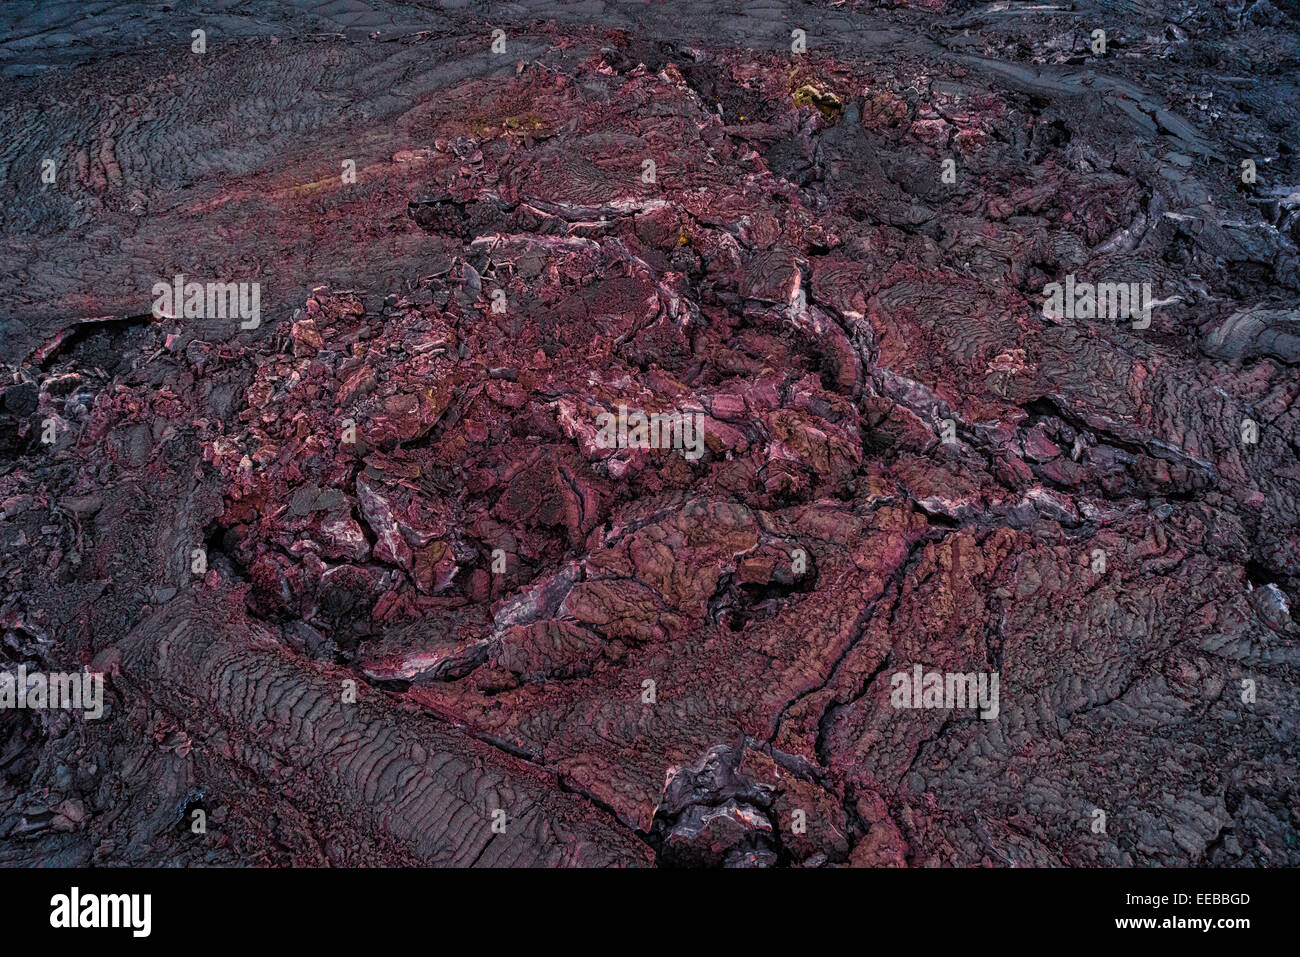 Volcano Eruption at the Holuhraun Fissure near the Bardarbunga Volcano, Iceland. Aerial view of red hot lava. - Stock Image